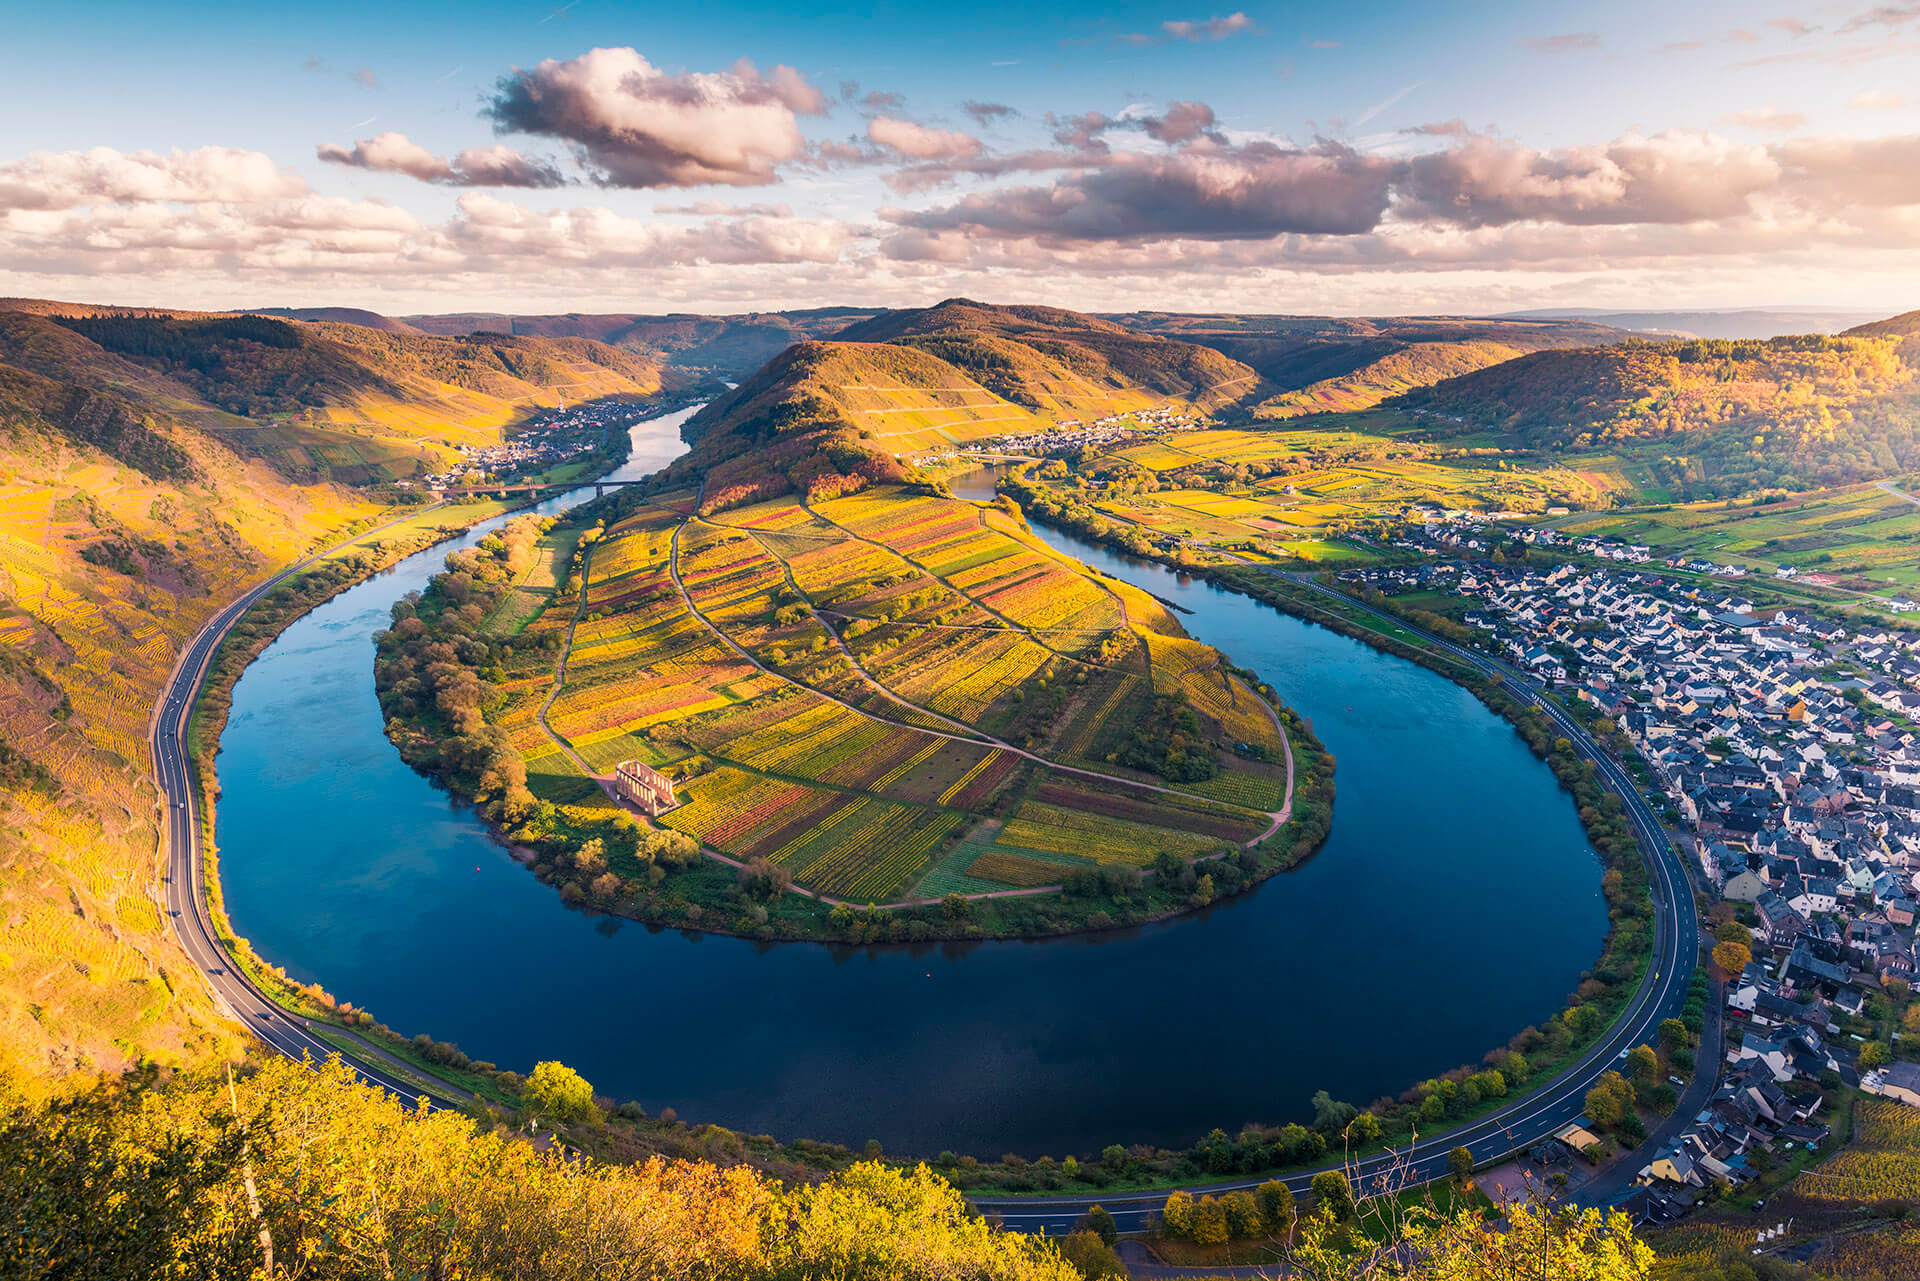 Famous viewpoint of the Moselle River doing a 180-dgree bend throught wine country